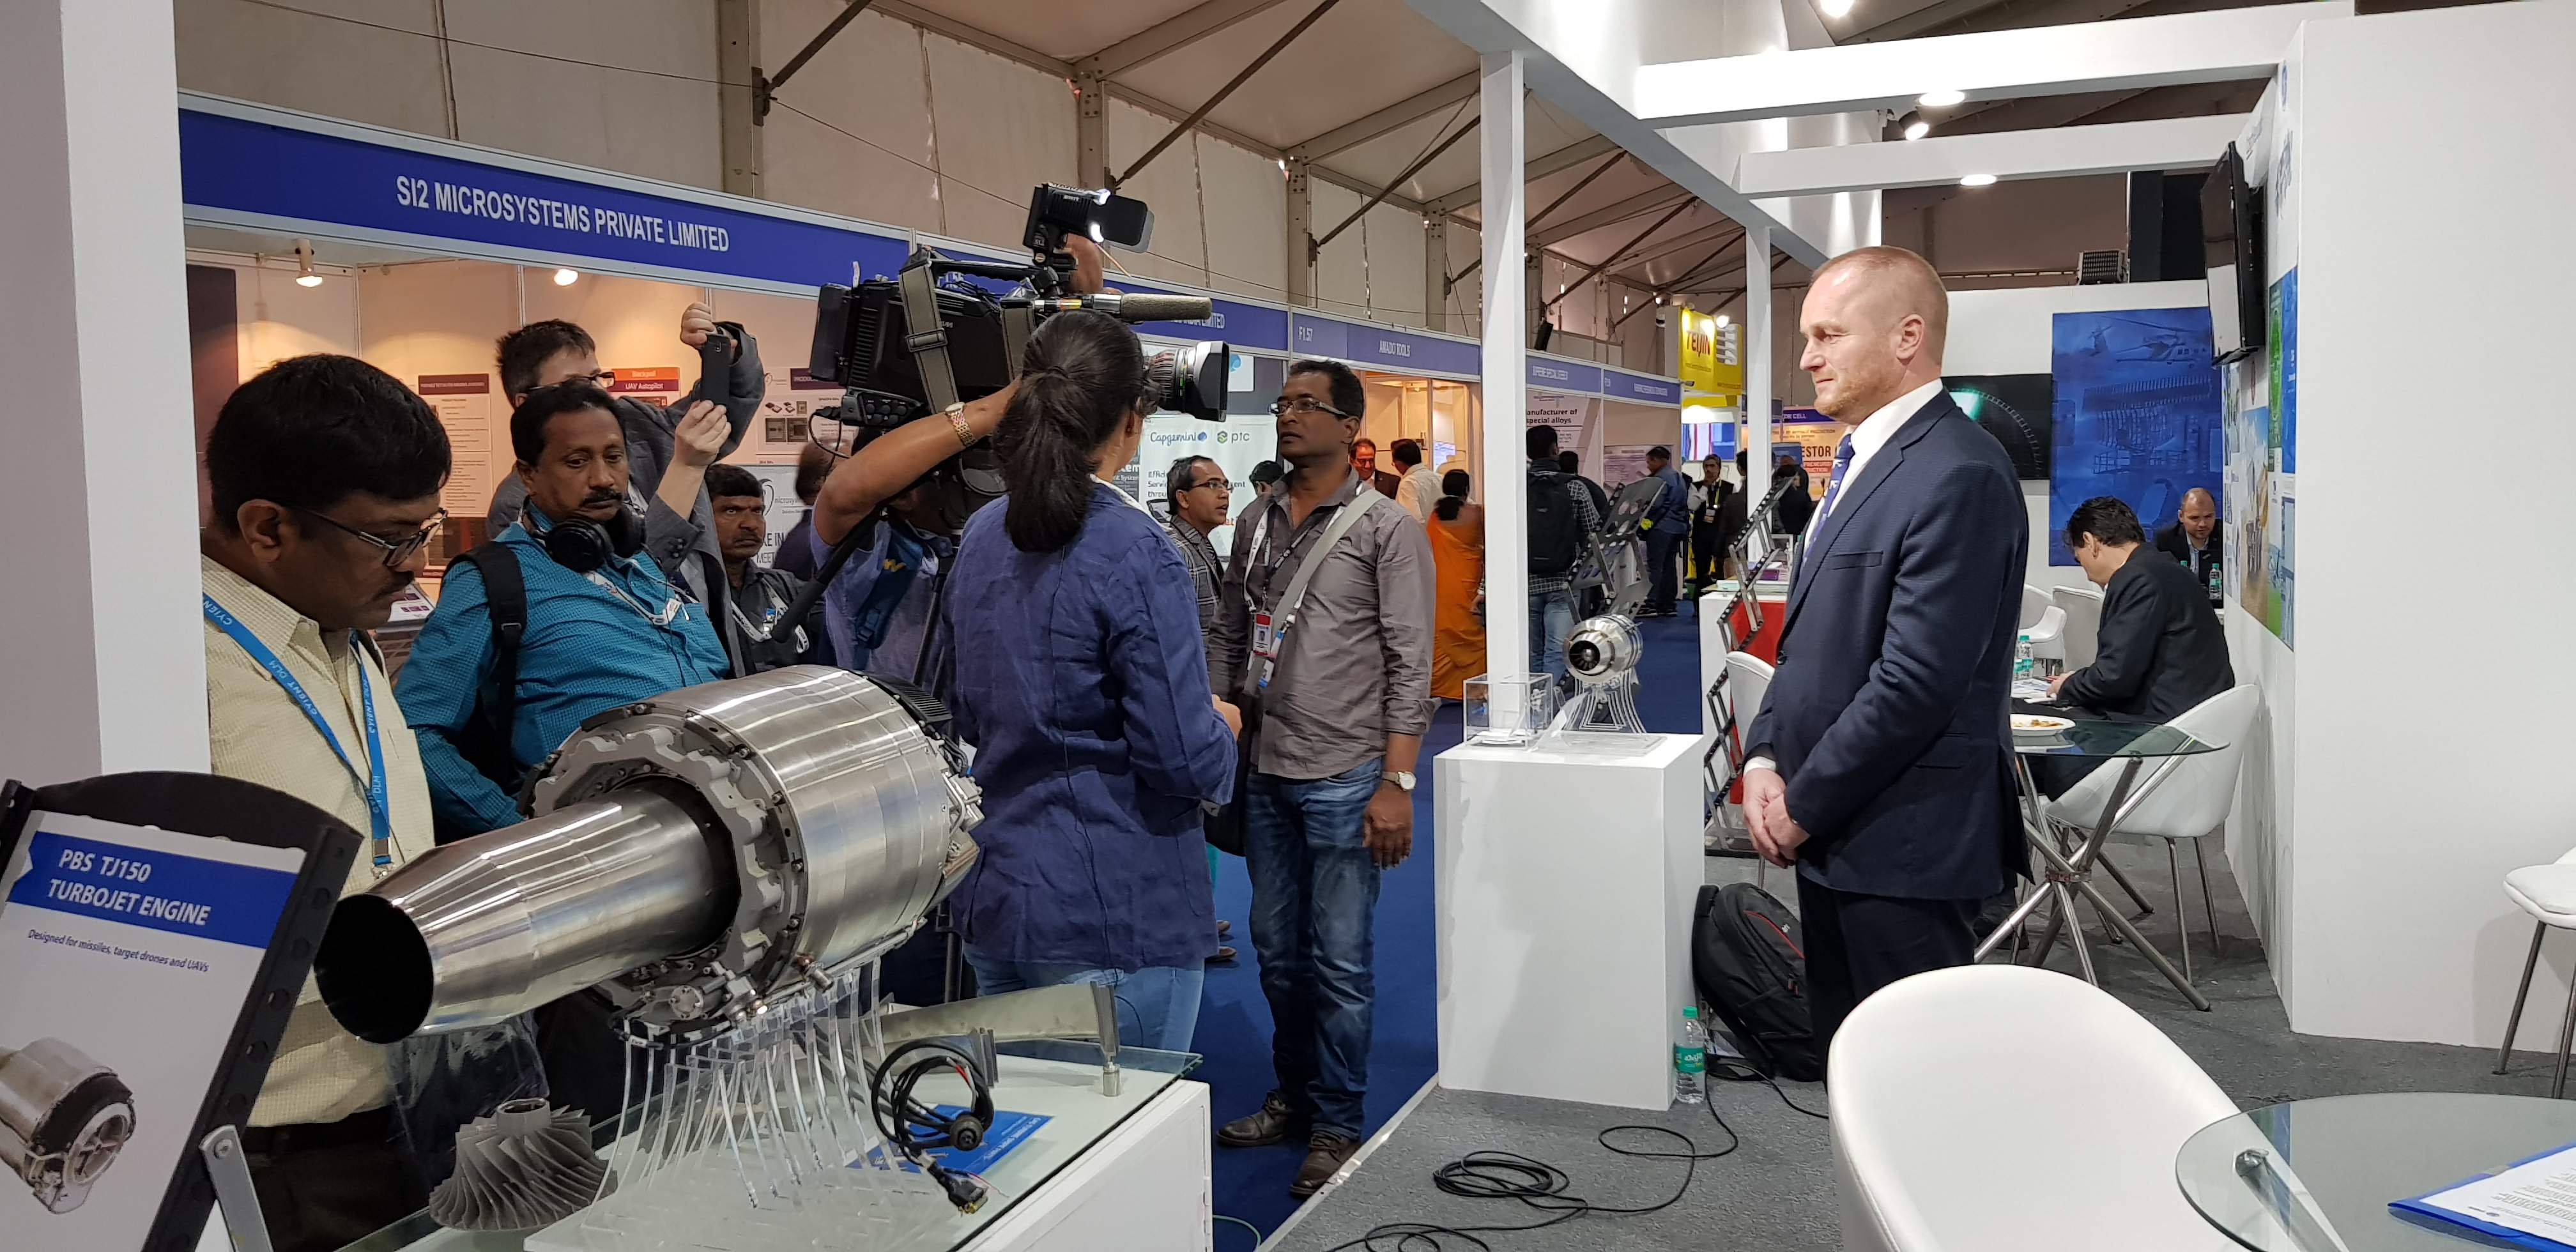 Minister Metnar supported us at AERO INDIA where we participated in talks with the Indian representatives and were interviewed by Channel ONE